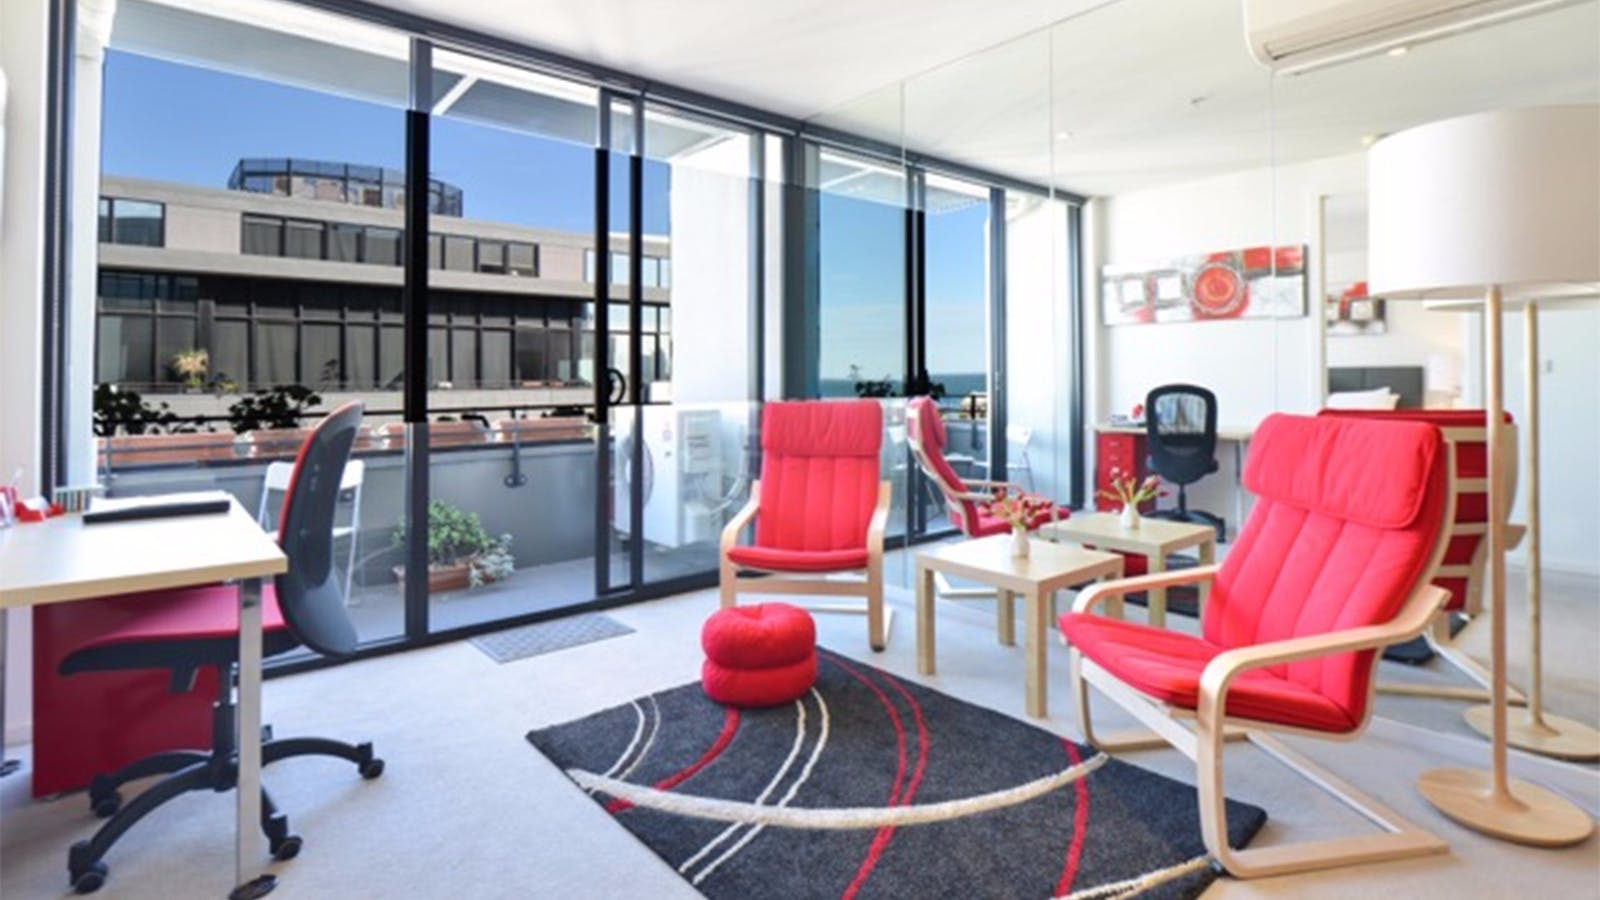 Serviced apartment near cafes restaurants shops and trams